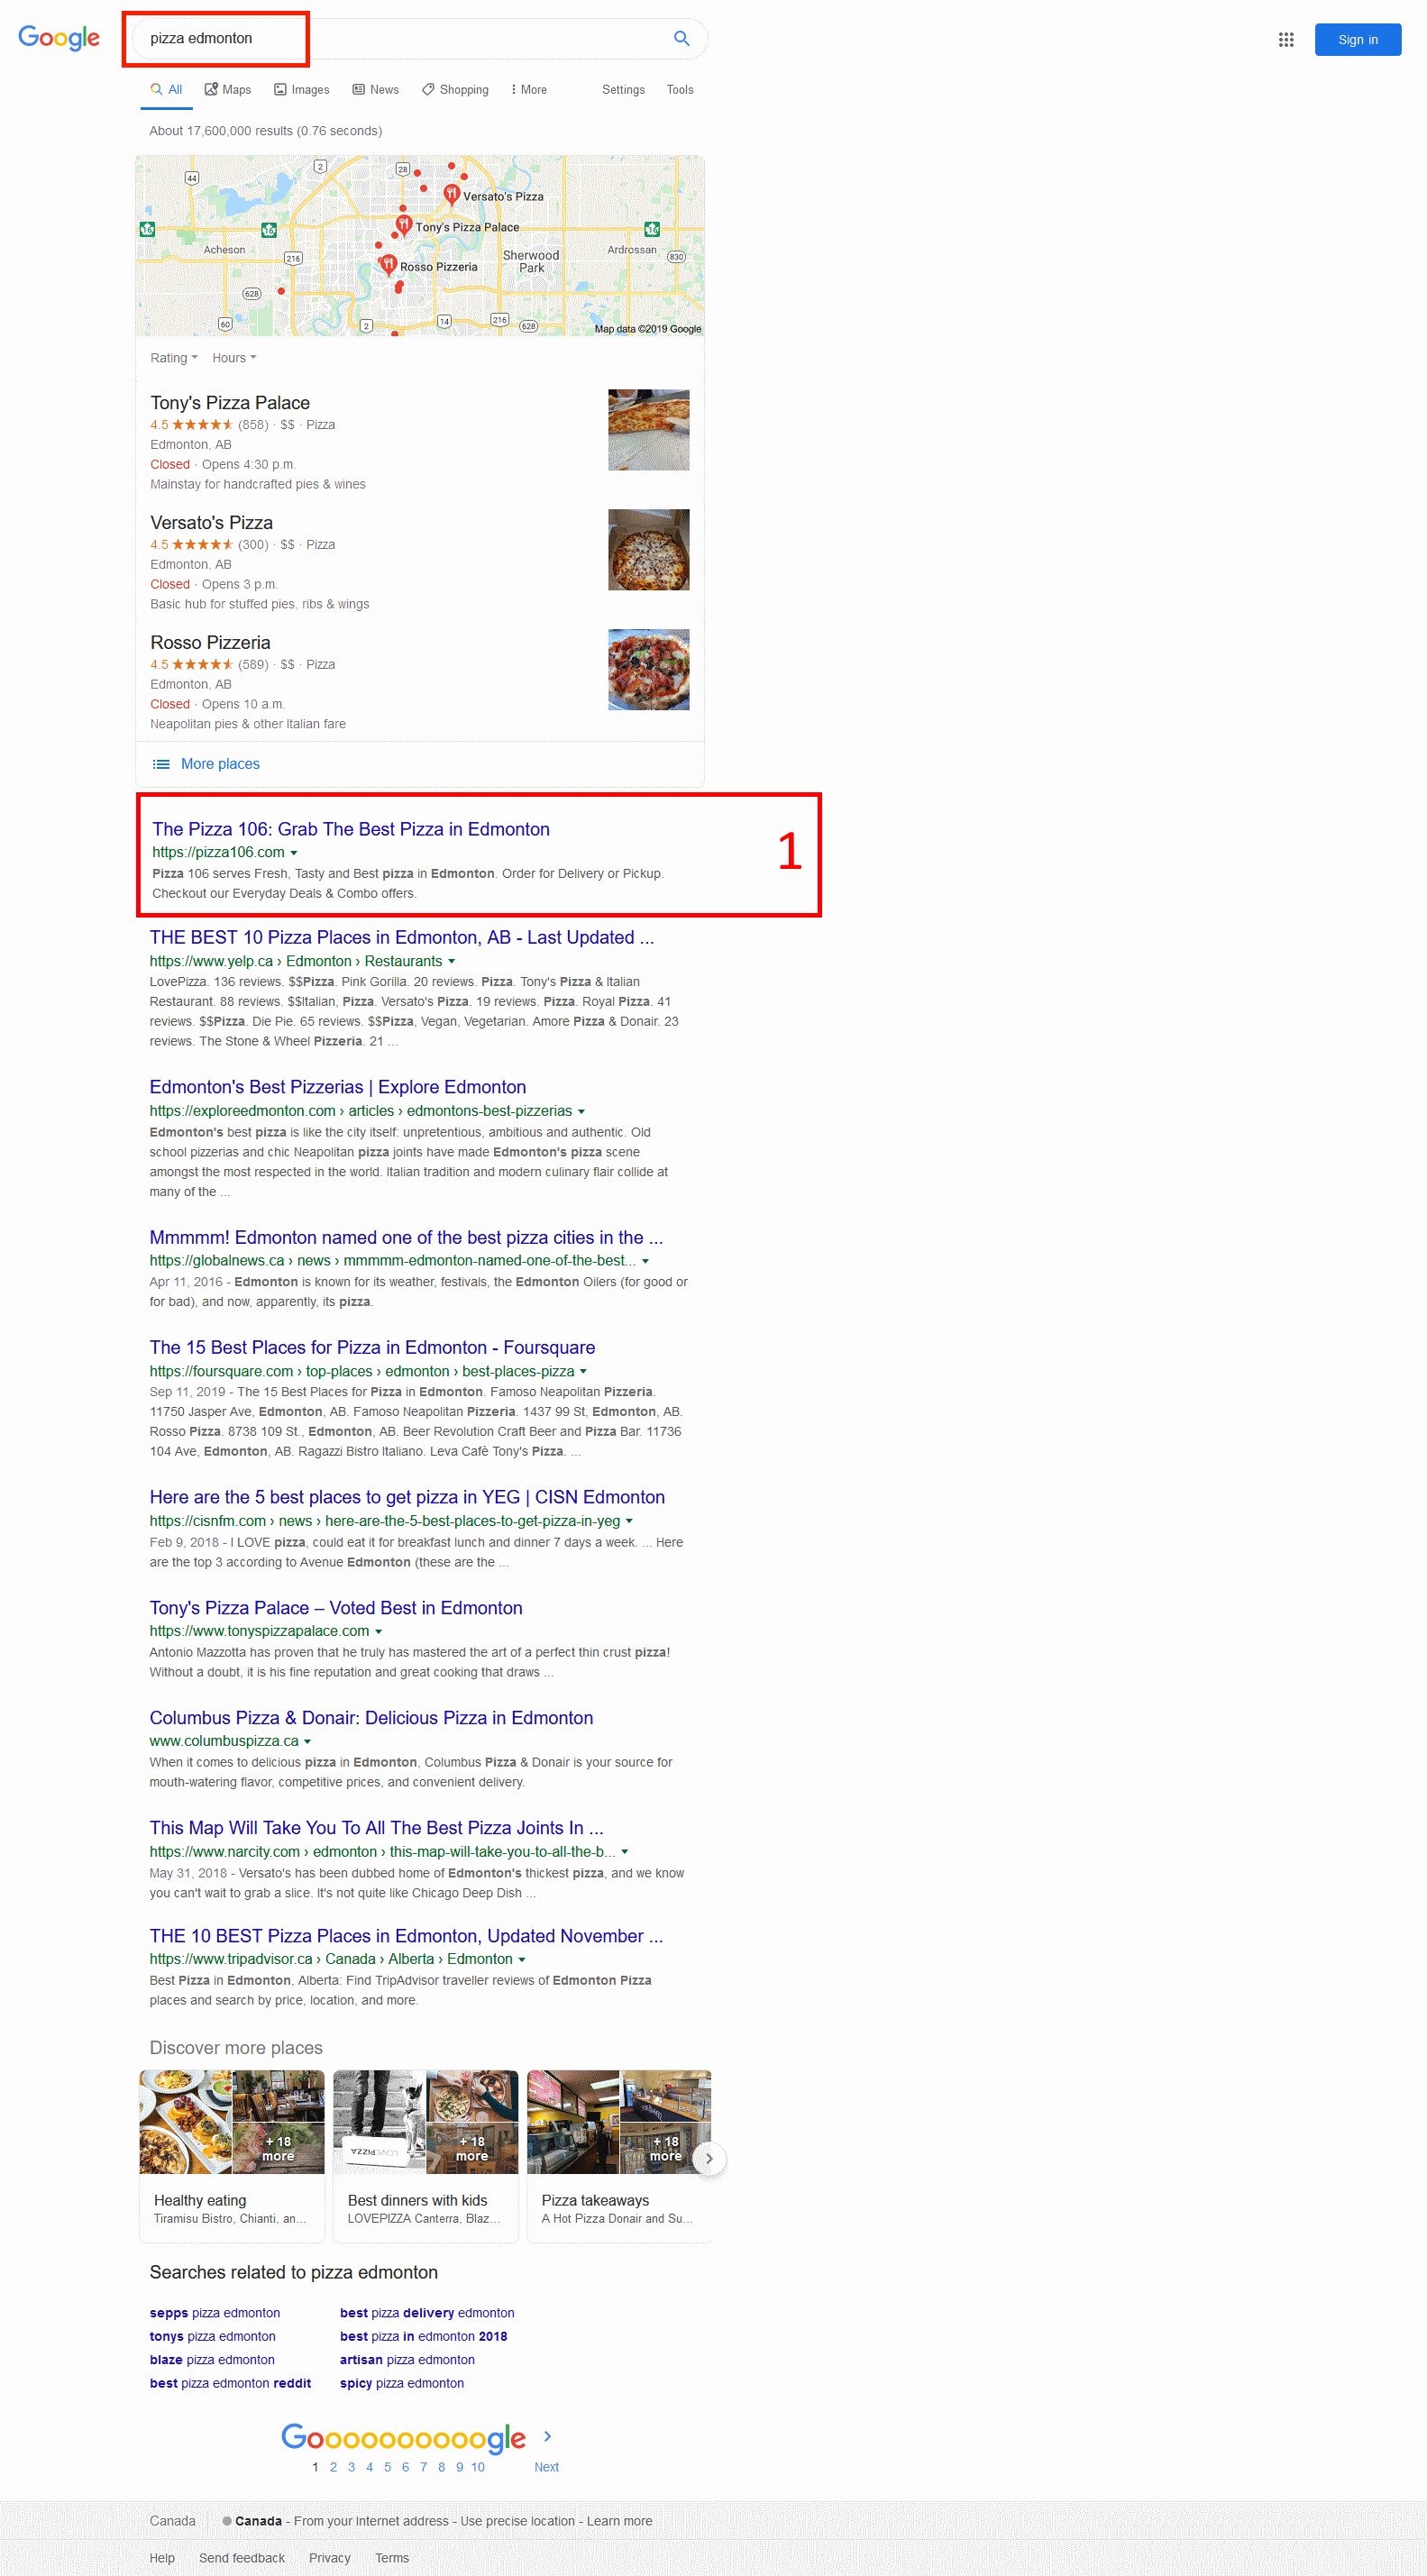 just type pizza edmonton and check the first result